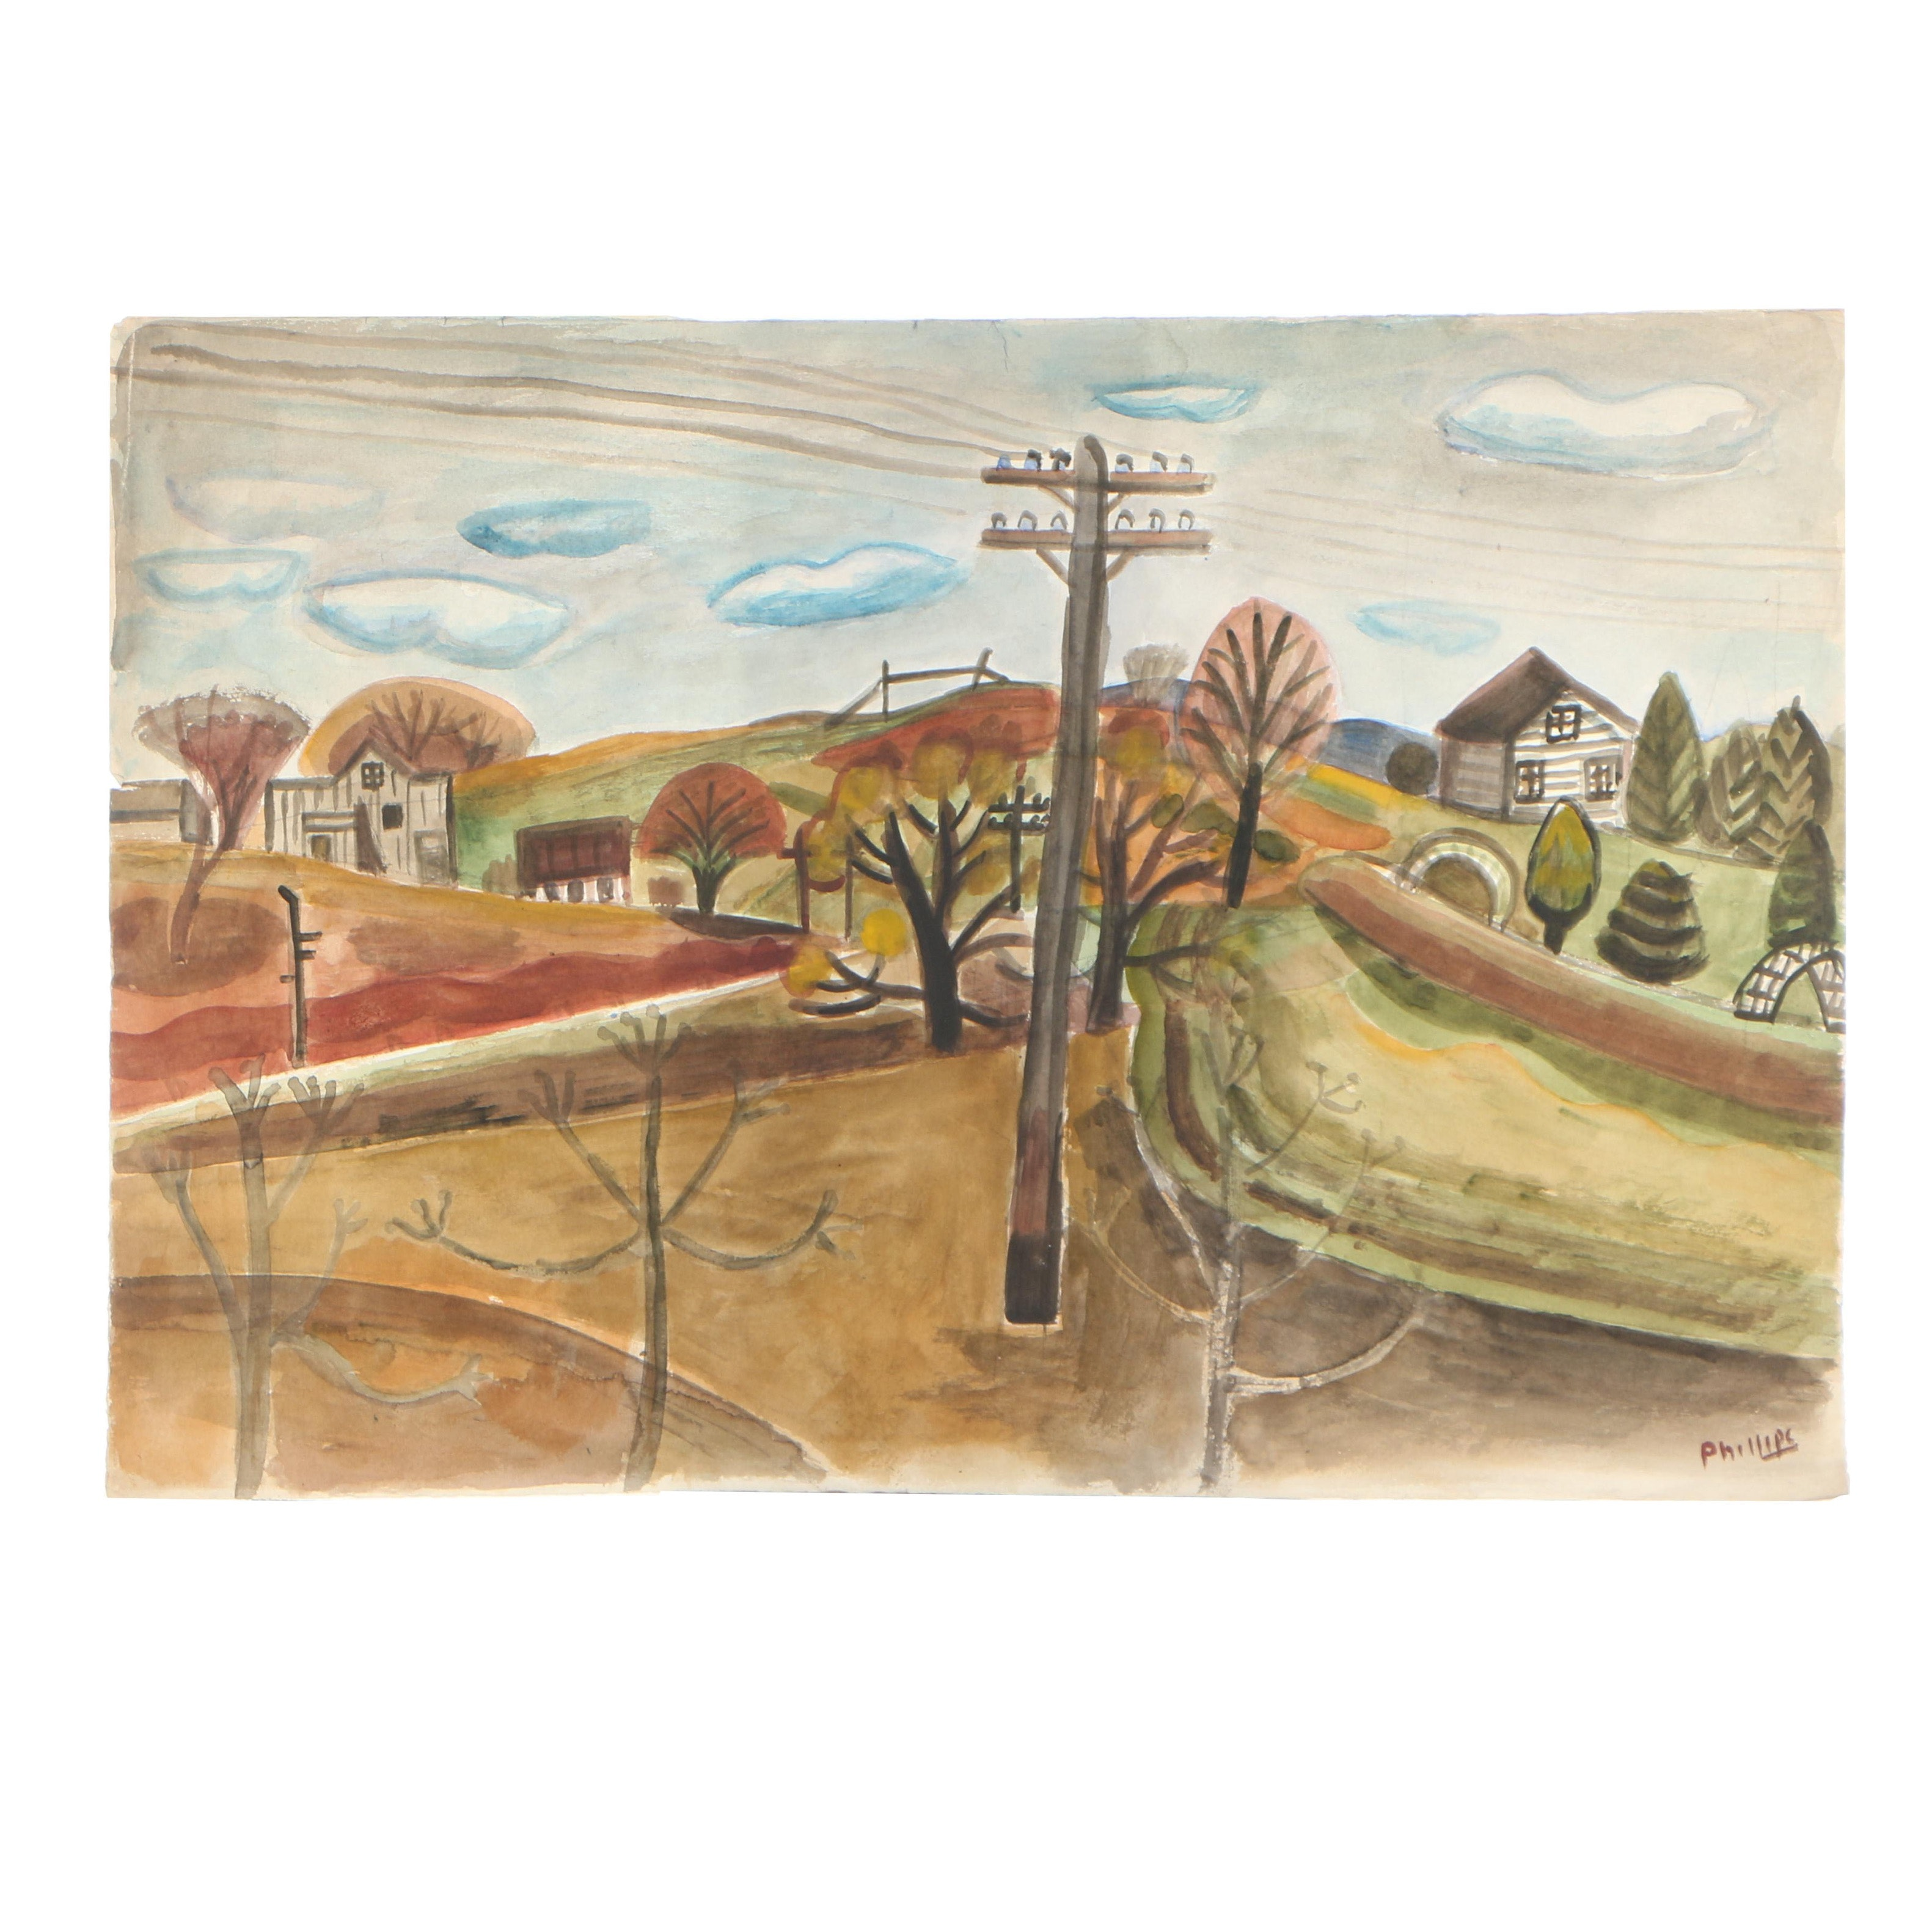 Esther Phillips Watercolor on Paper Rural Town Scene